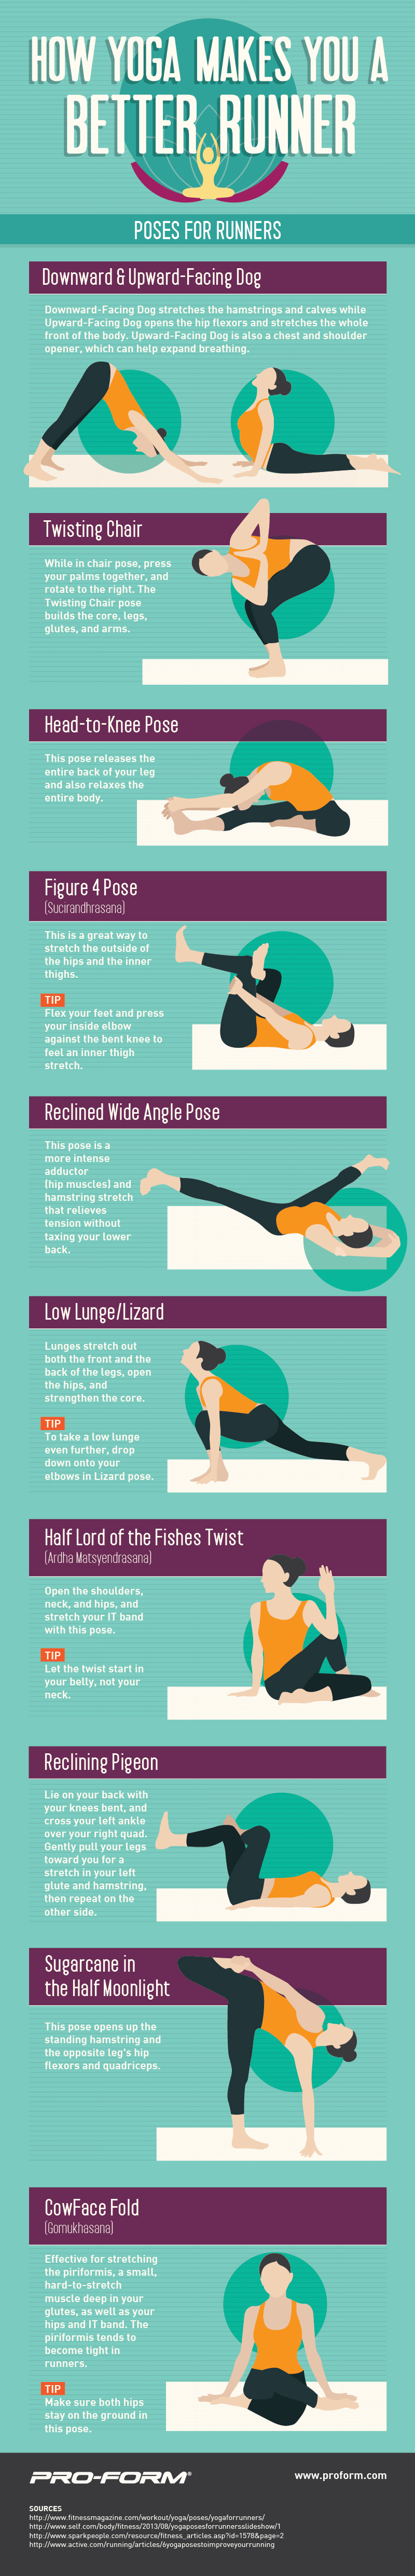 How yoga makes you a better runner infographic